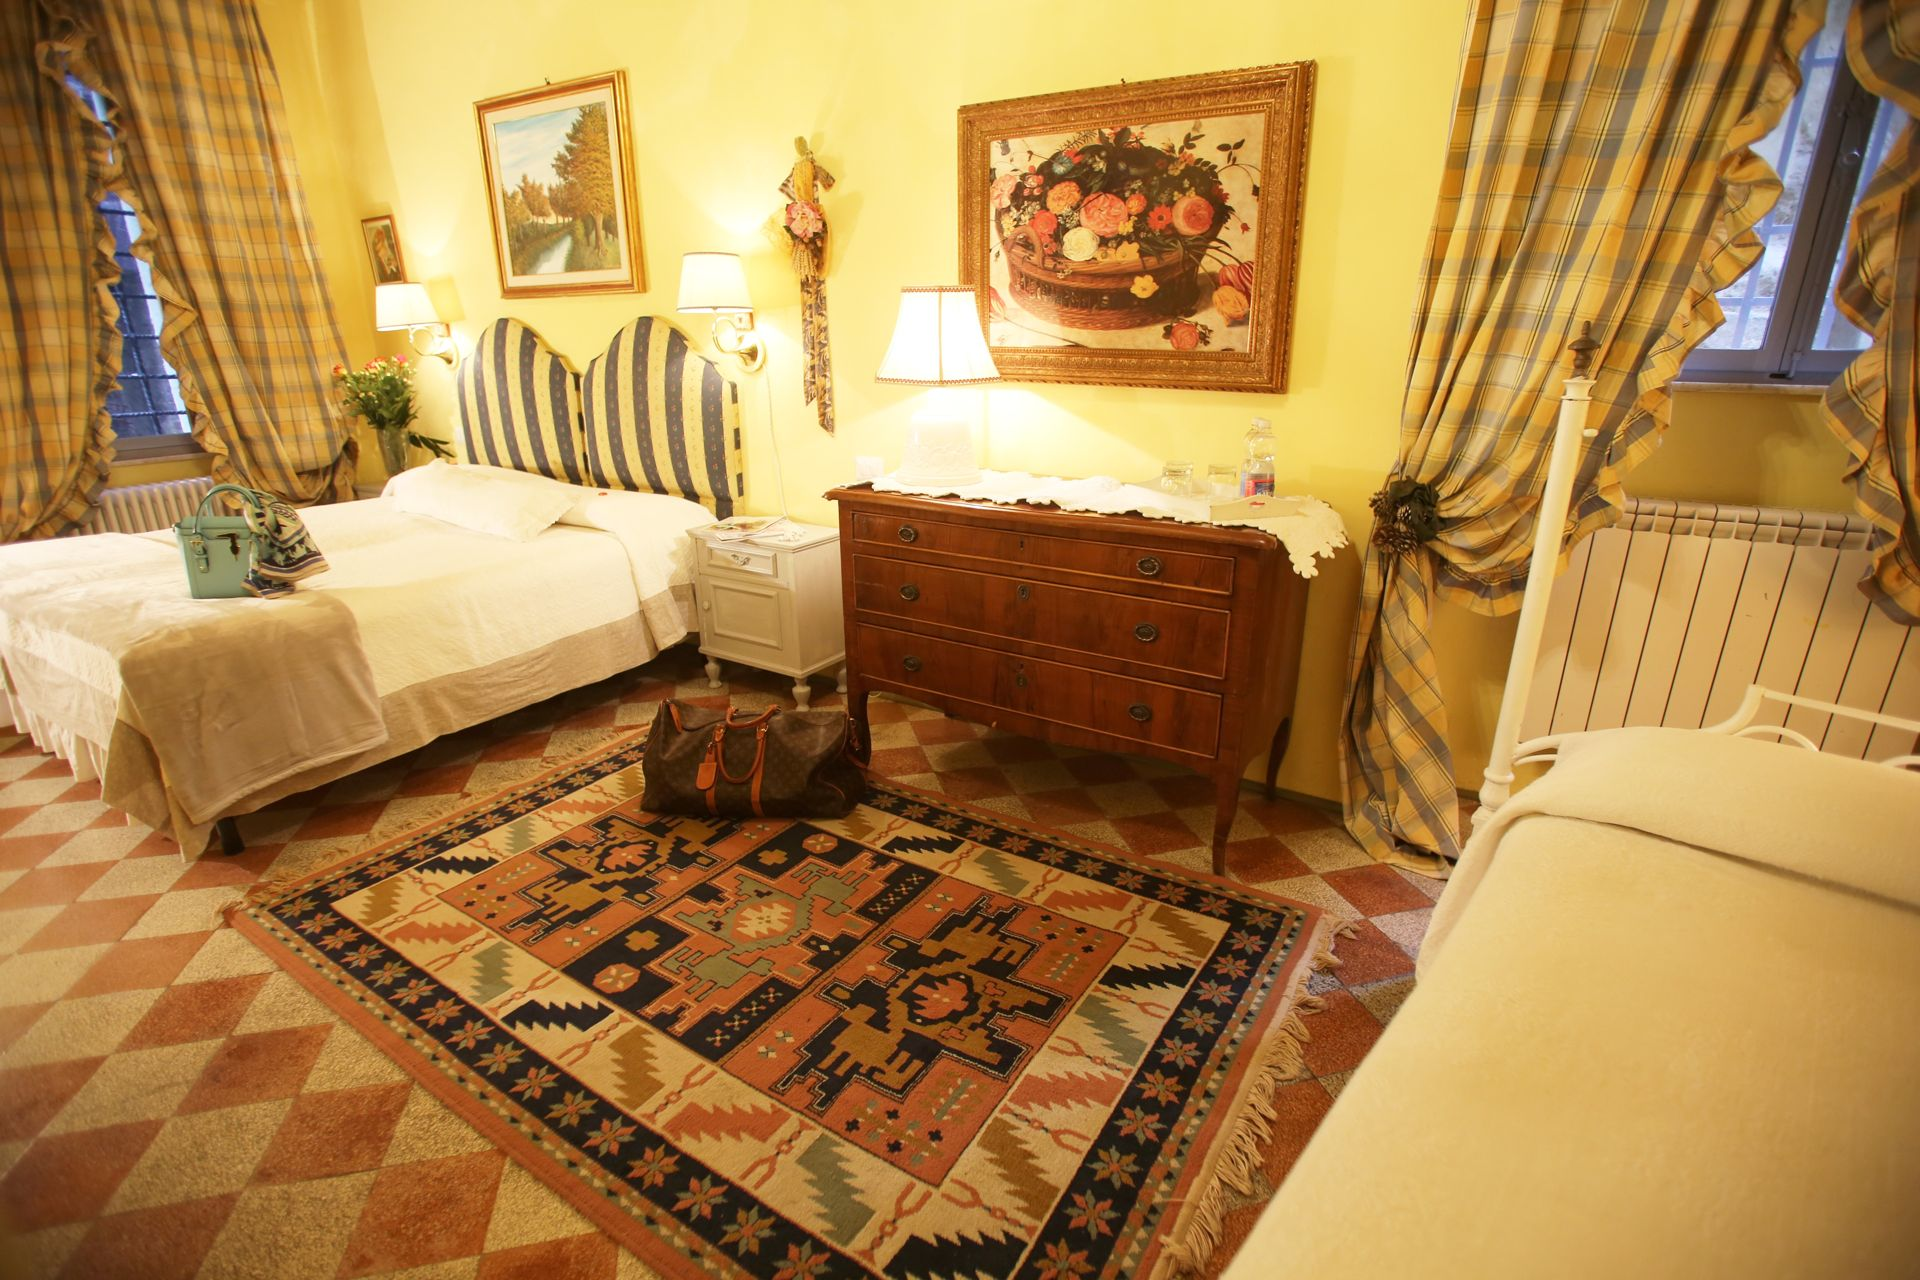 bed-and-breakfast-le-aquile-siena-smeraldo-1